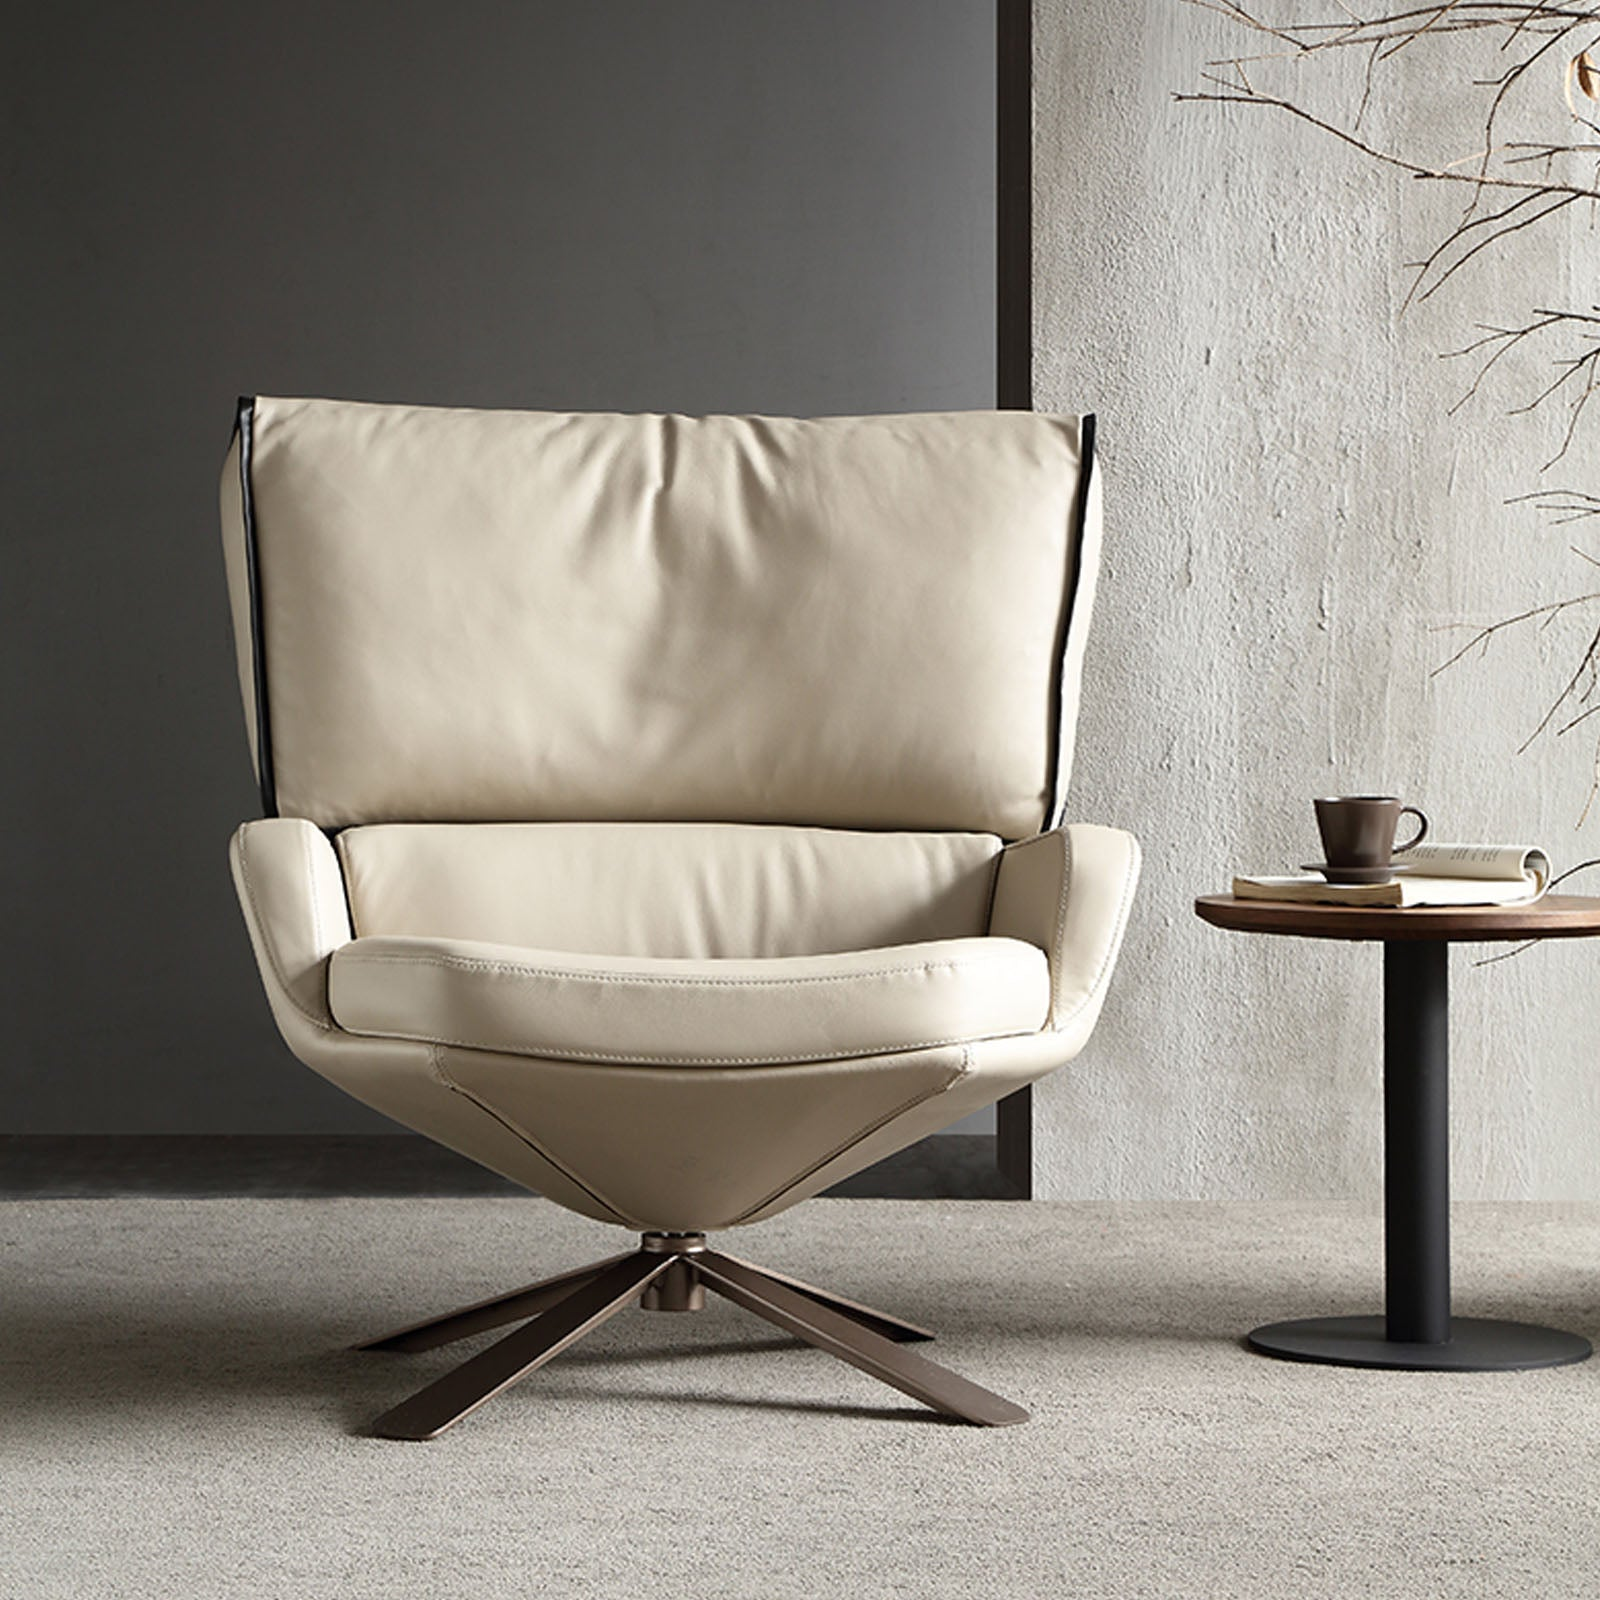 Pre-Order 20 days delivery Varese lounge chair LC043-beige